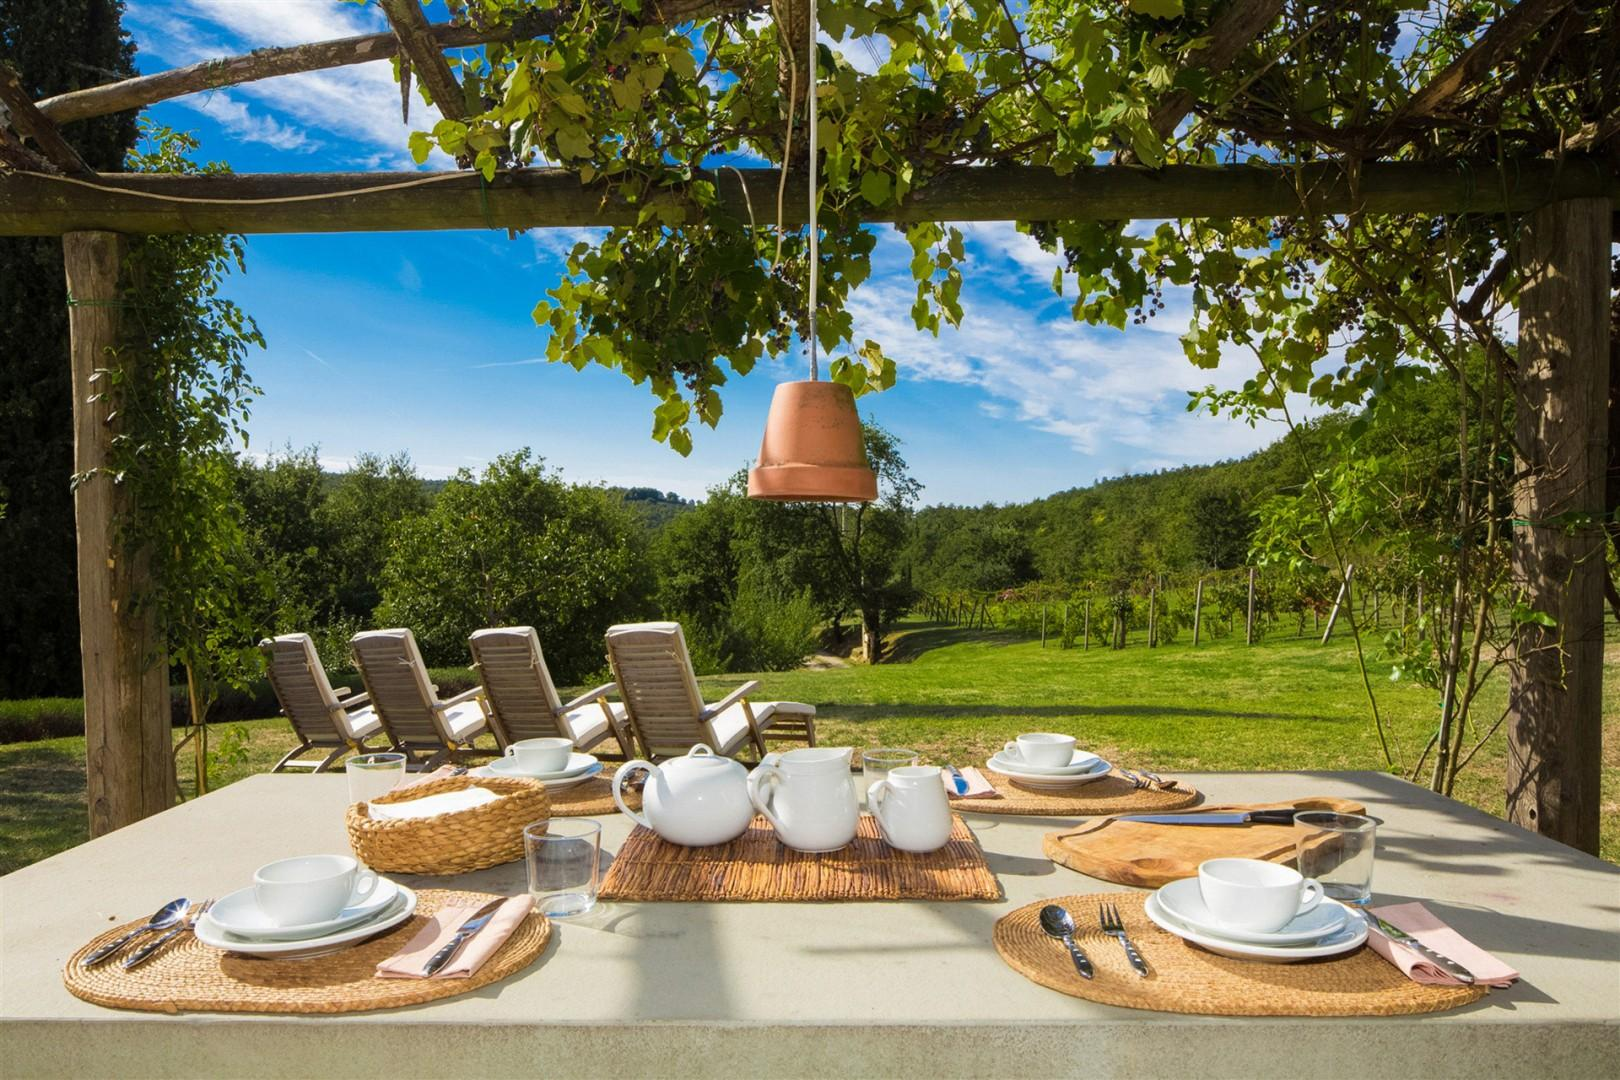 Breakfast outside on the terrace is a great way to start the day. The table seats up to 14 people.